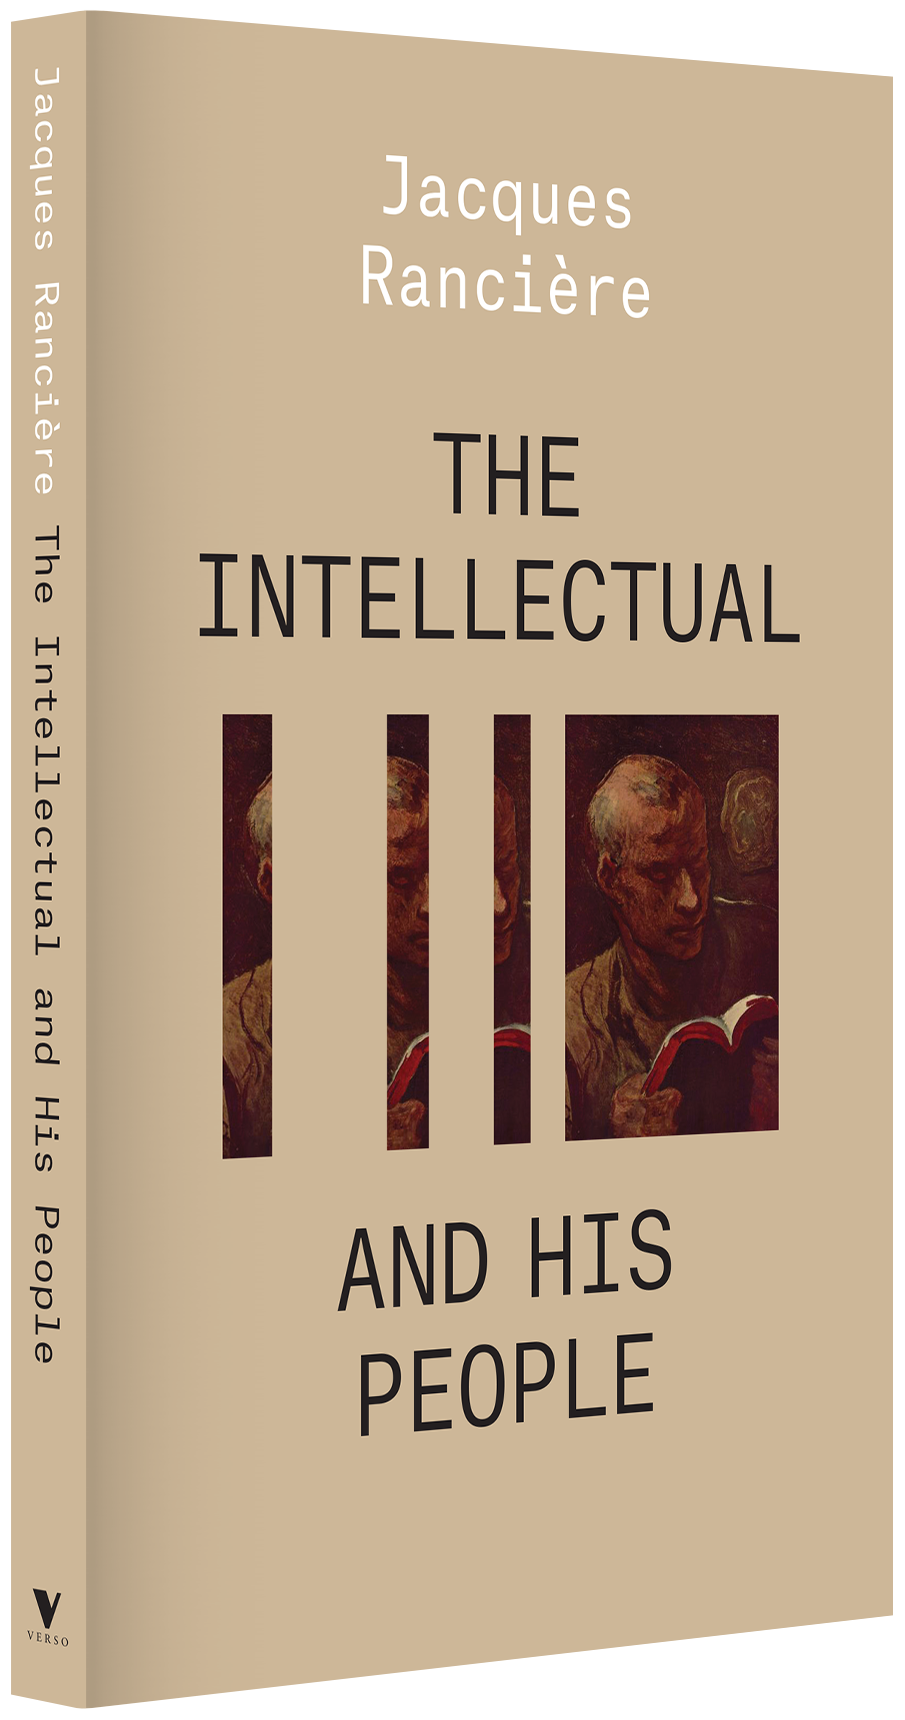 Essential-ranciere-intellectual-and-his-people